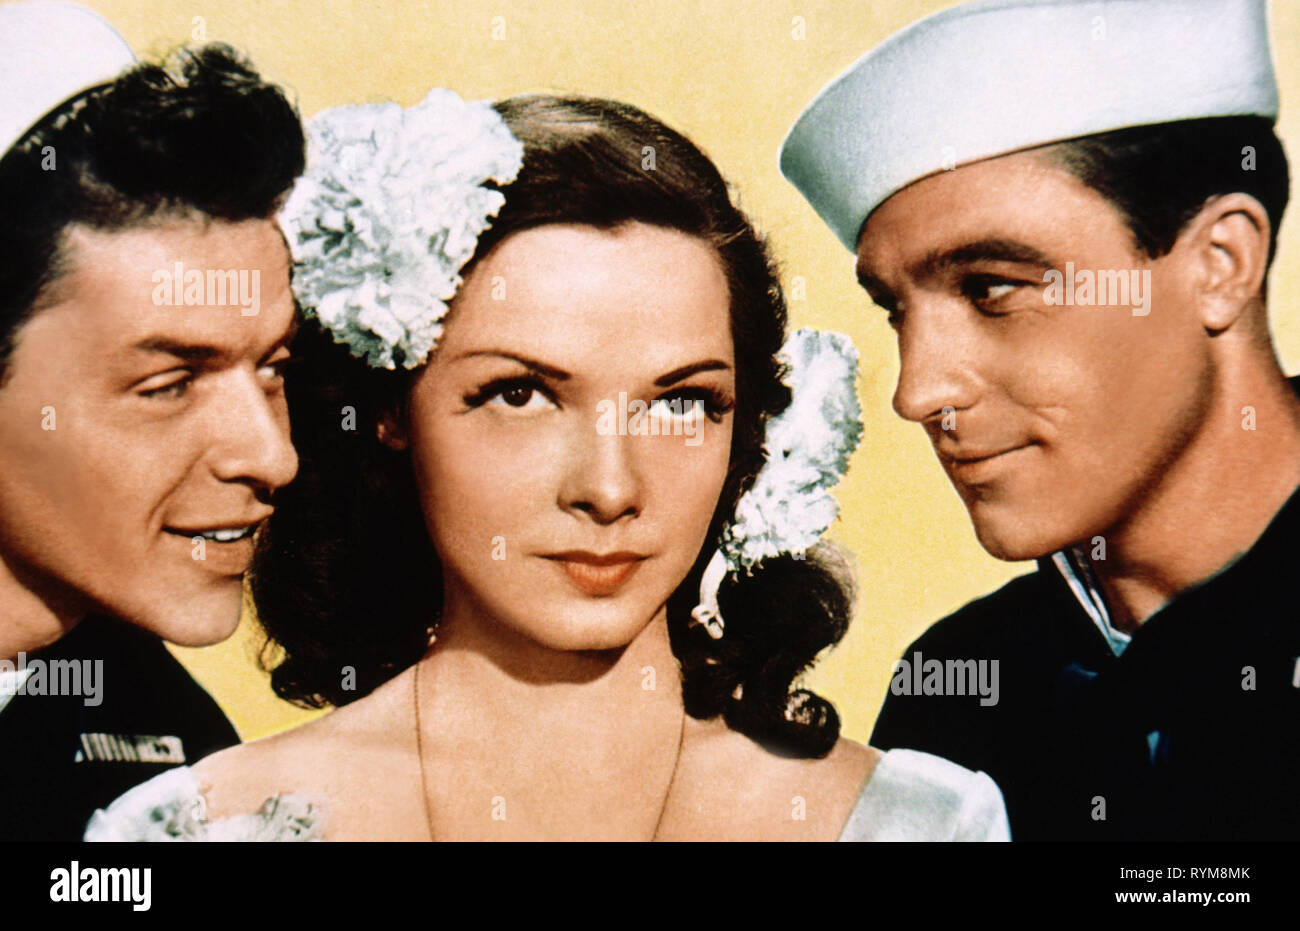 SINATRA,GRAYSON,KELLY, ANCHORS AWEIGH, 1945 - Stock Image